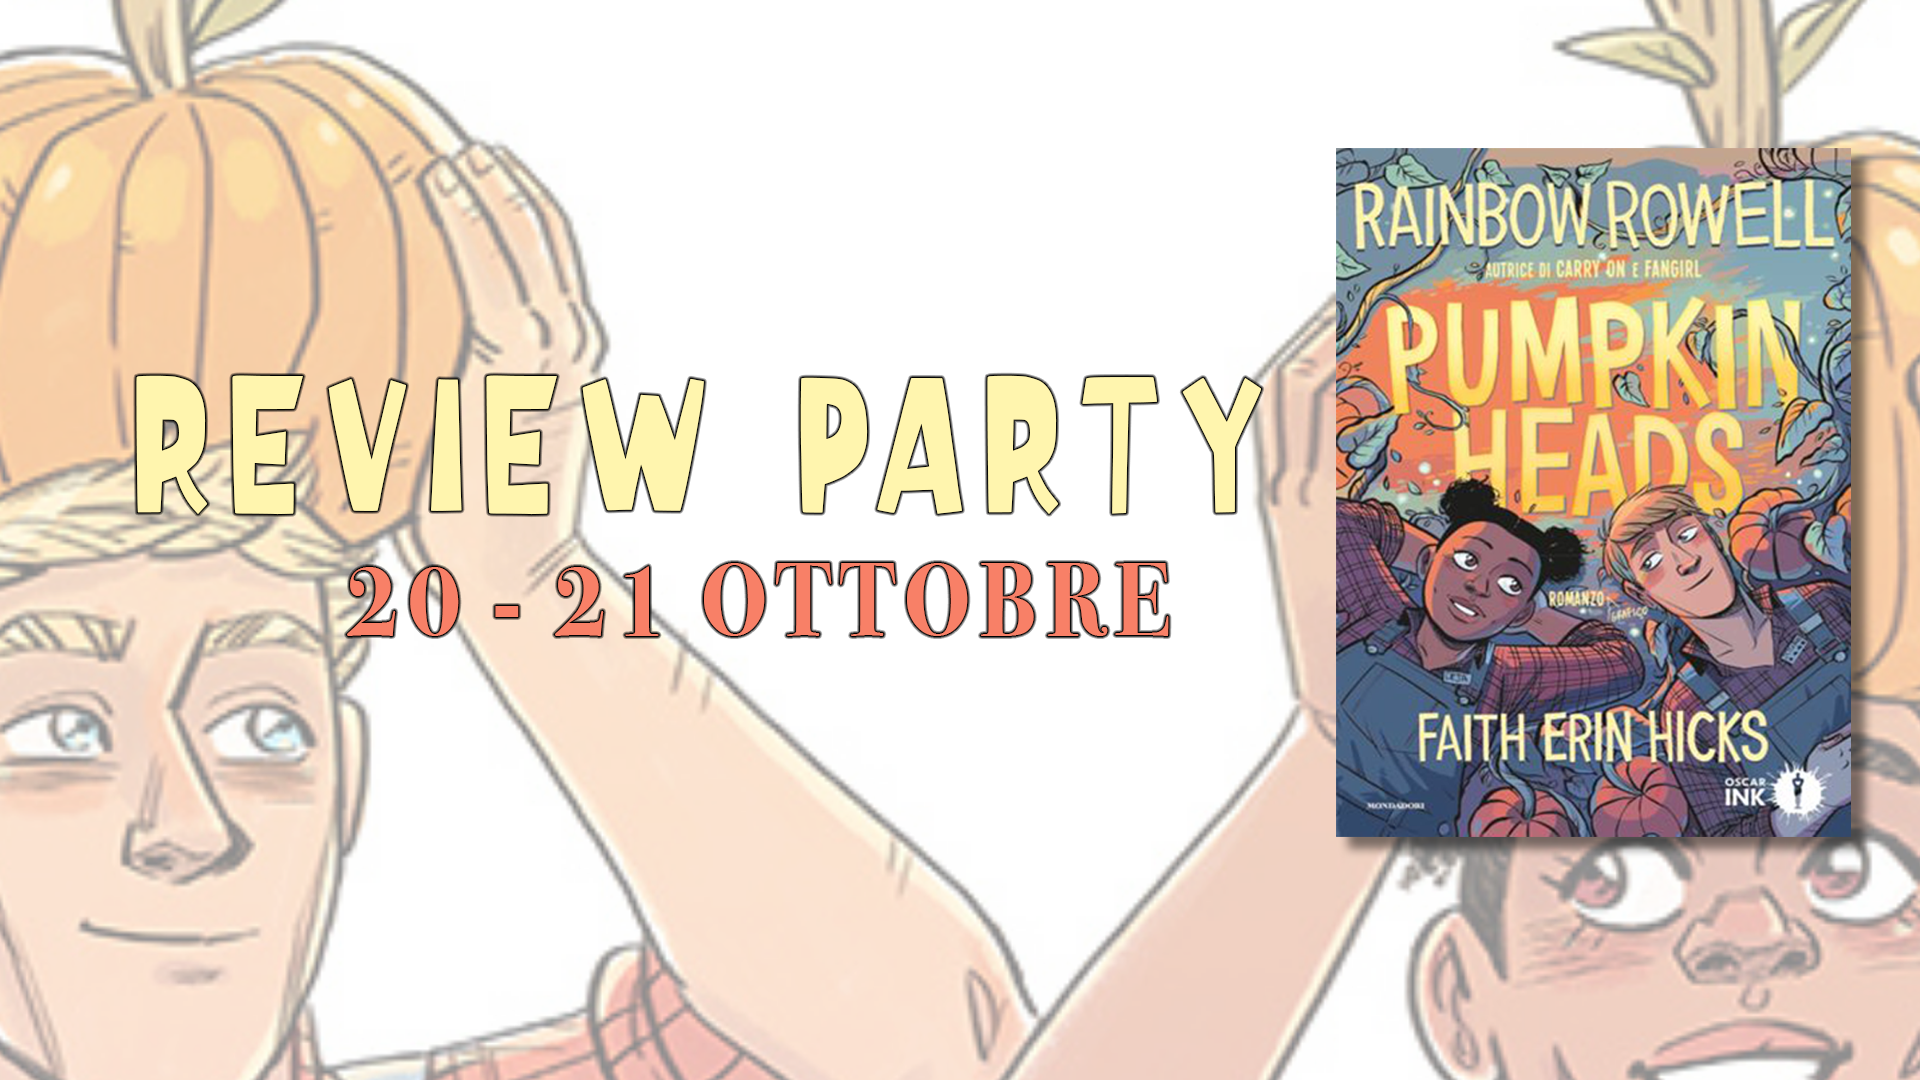 Review Party - Pumpkinheads di Raimbow Rowell